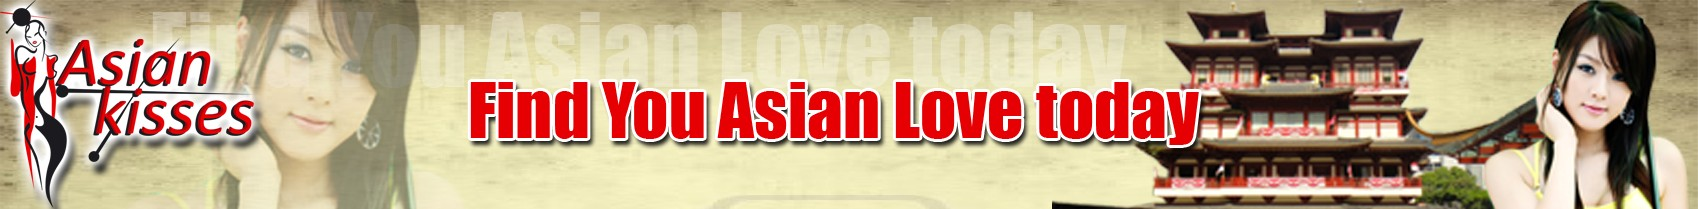 "dating an asian guy experience Is interested in dating asian men  a korean or japanese guy) she'll compliment your asian attributes:  she has ""asian-dating experience"":."